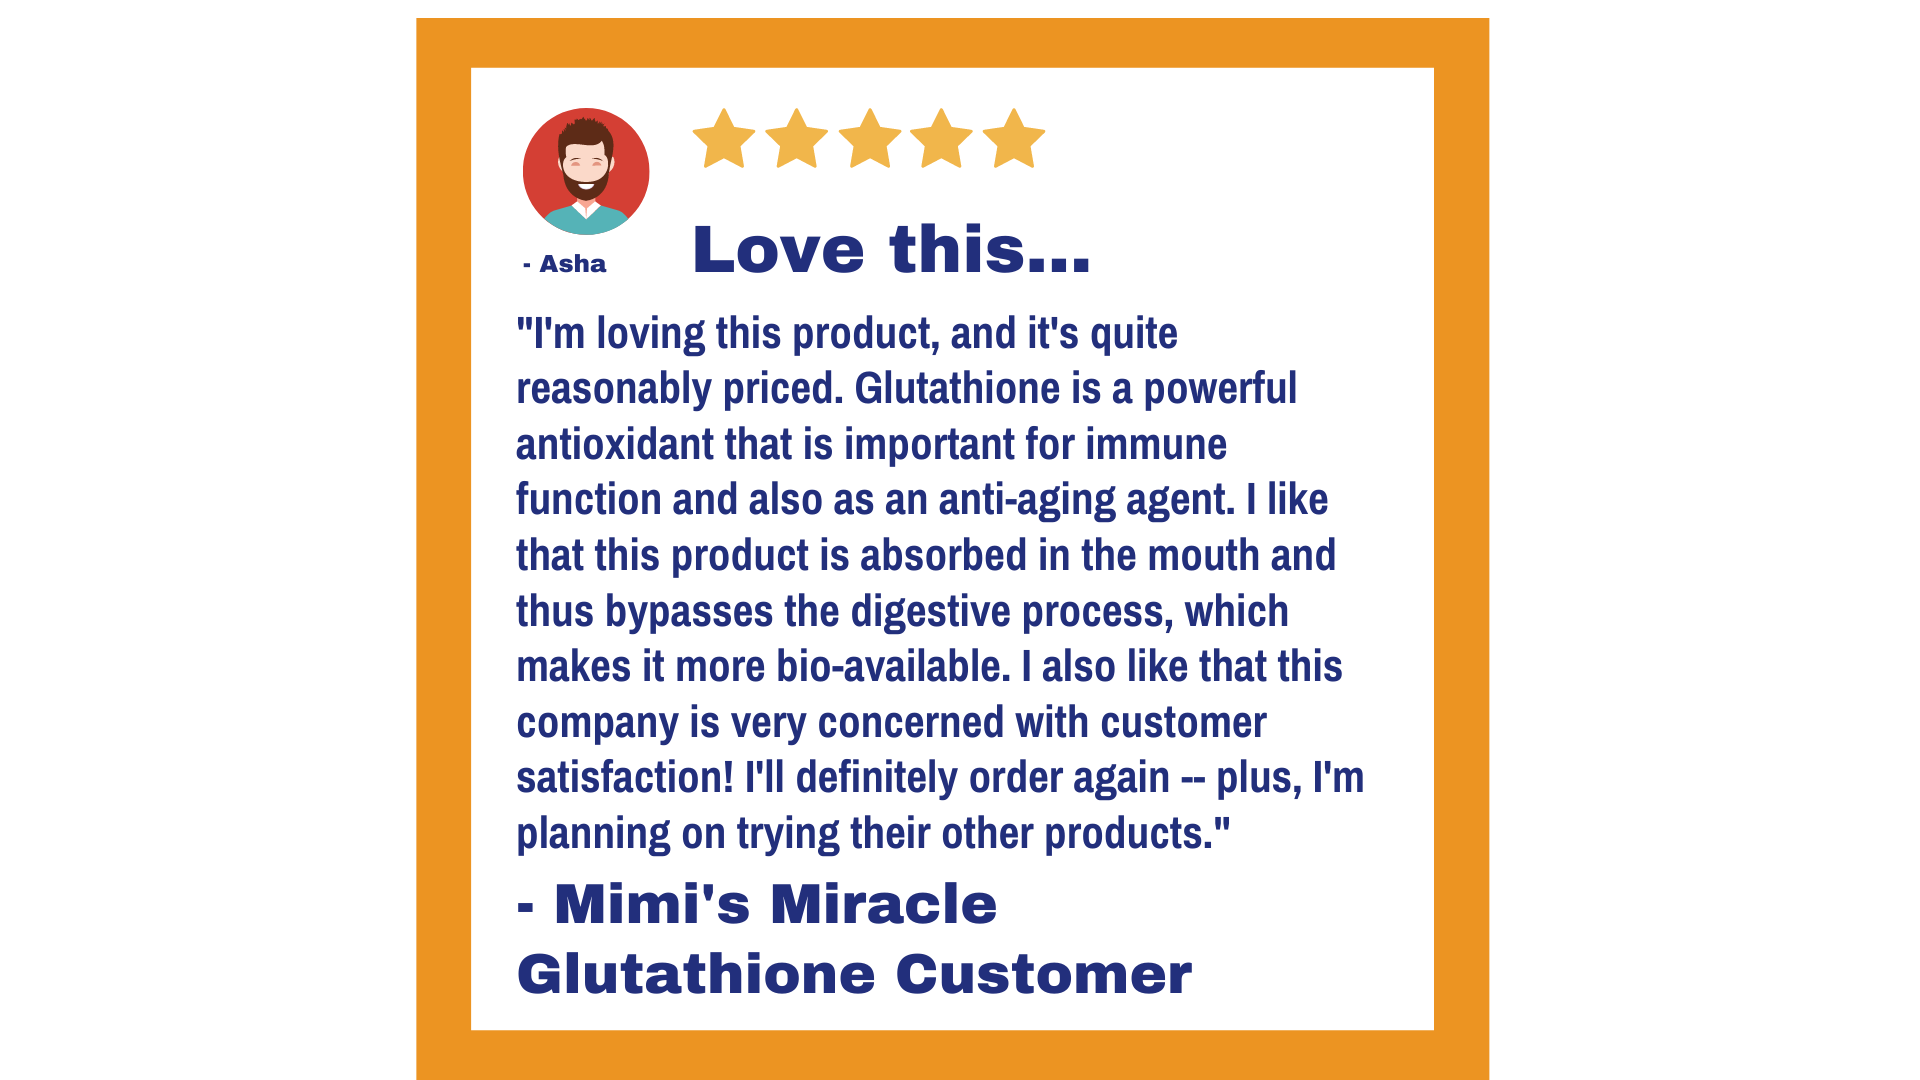 Mimi's Miracle Glutathione Review